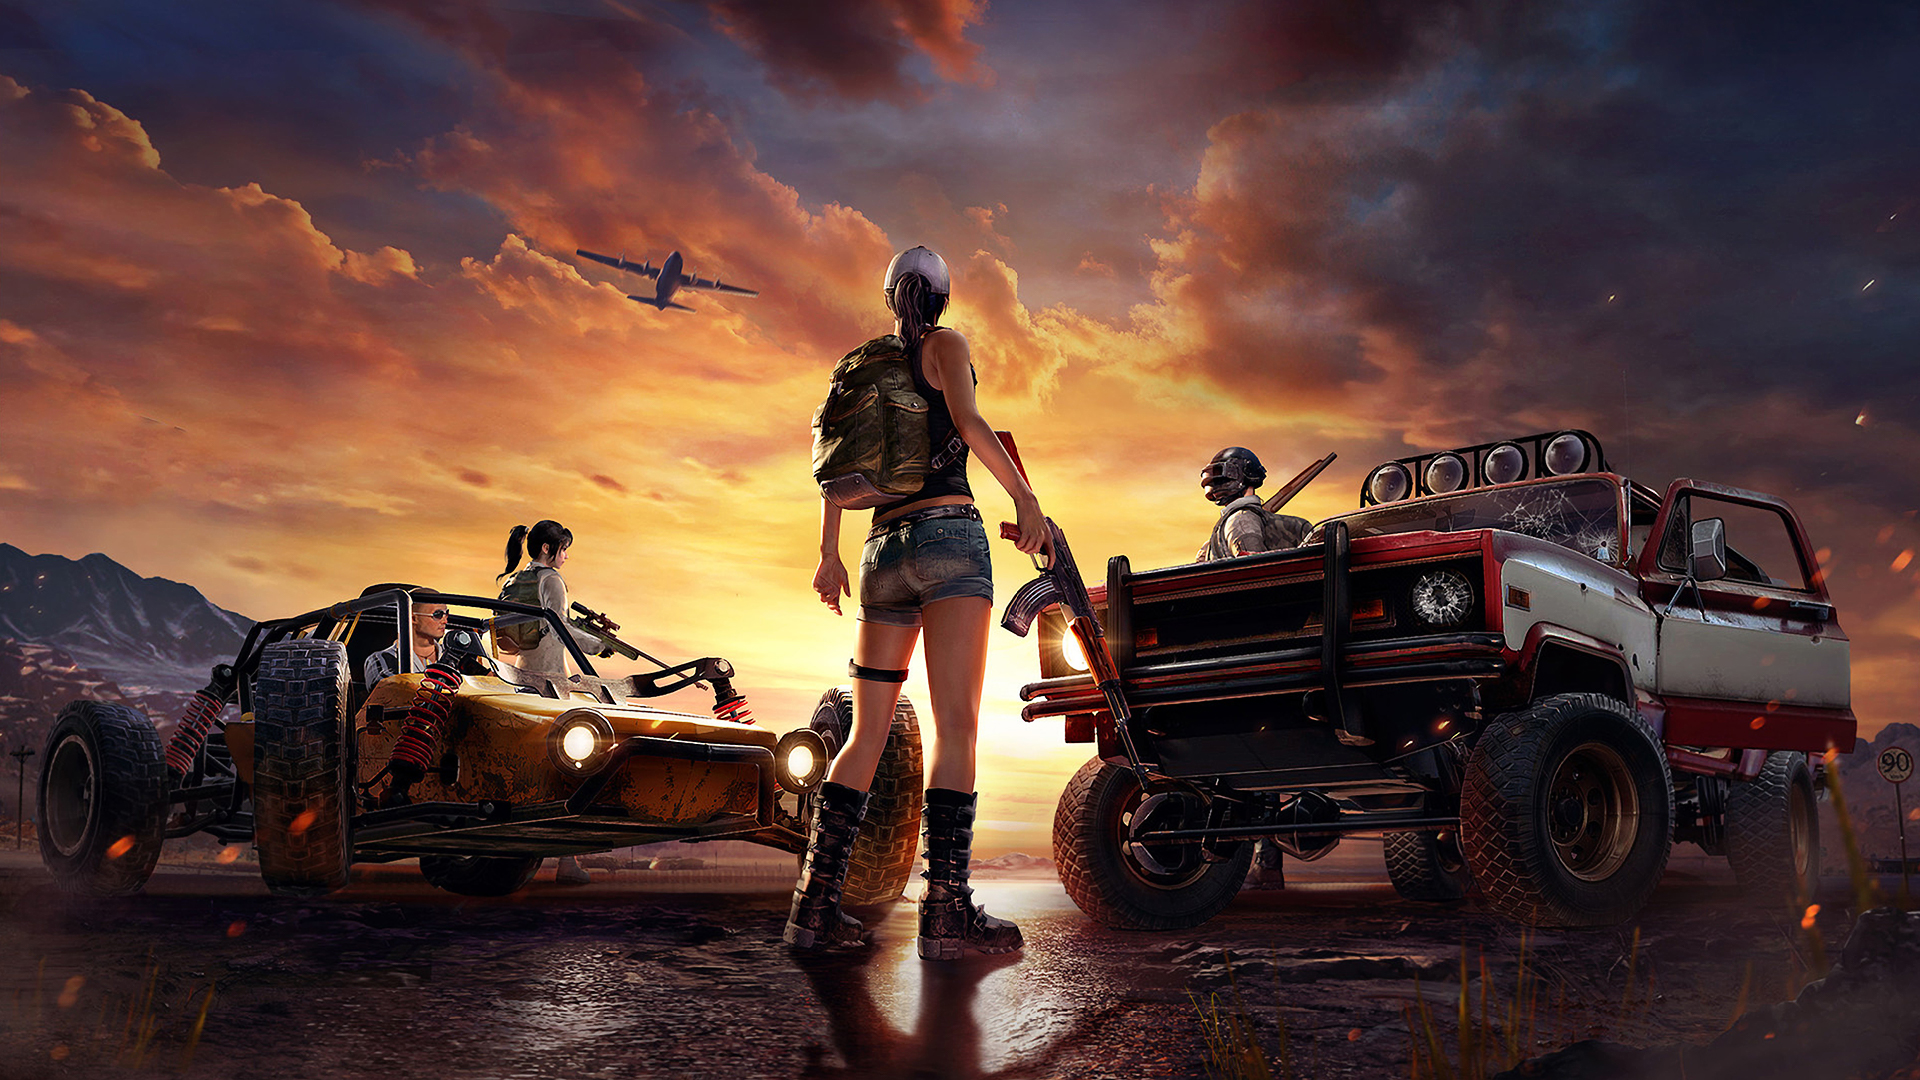 4k Playerunknowns Battlegrounds: 3840x2400 PlayerUnknowns Battlegrounds Art 4k HD 4k